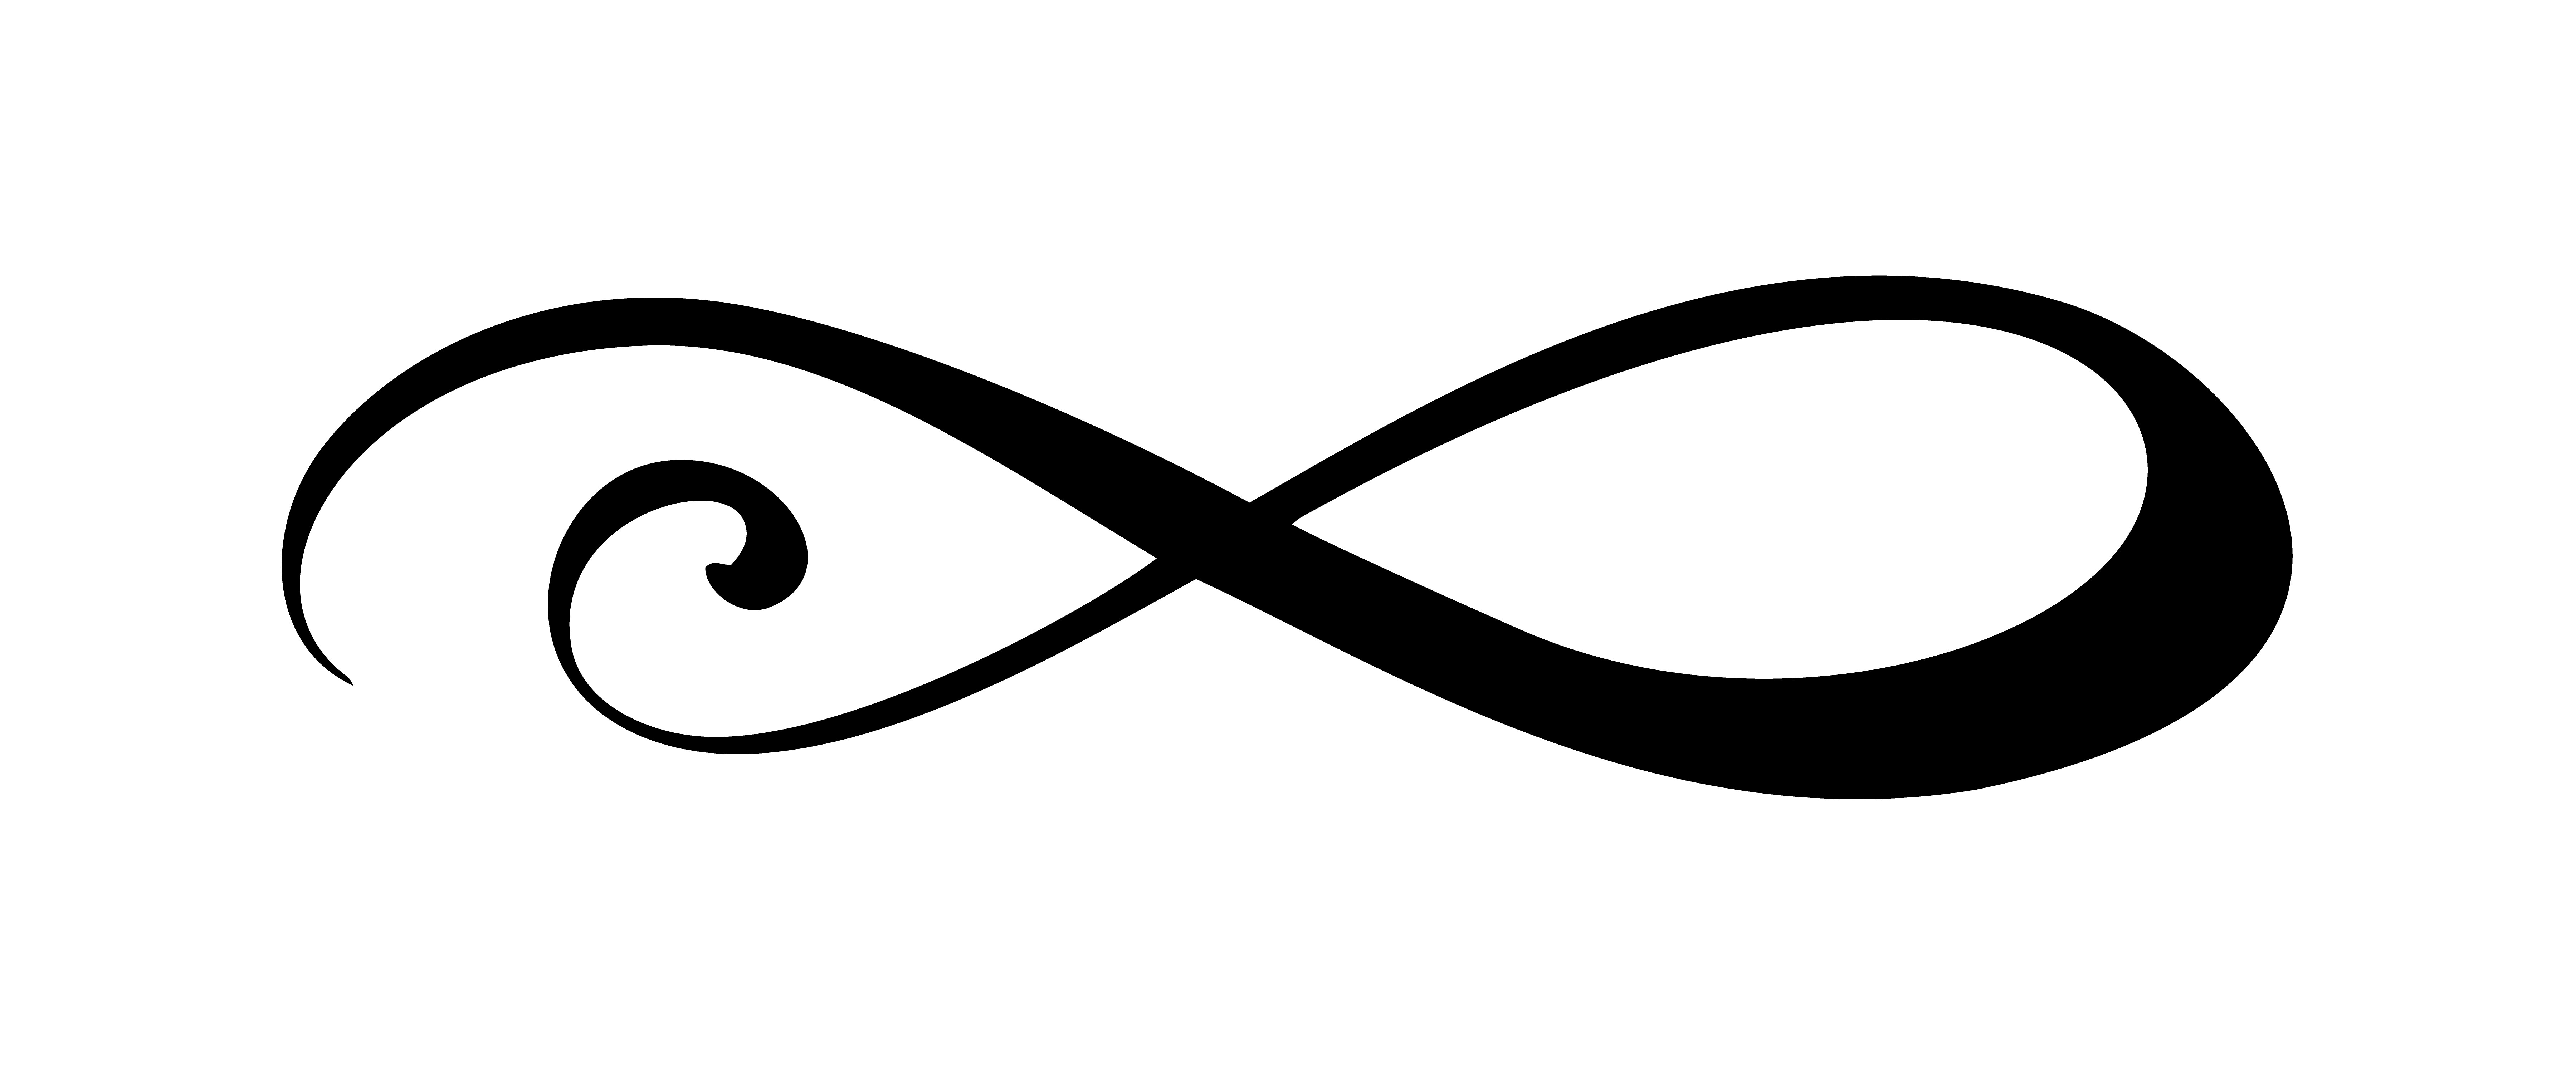 Infinity Calligraphy Vector Illustration Symbol Eternal